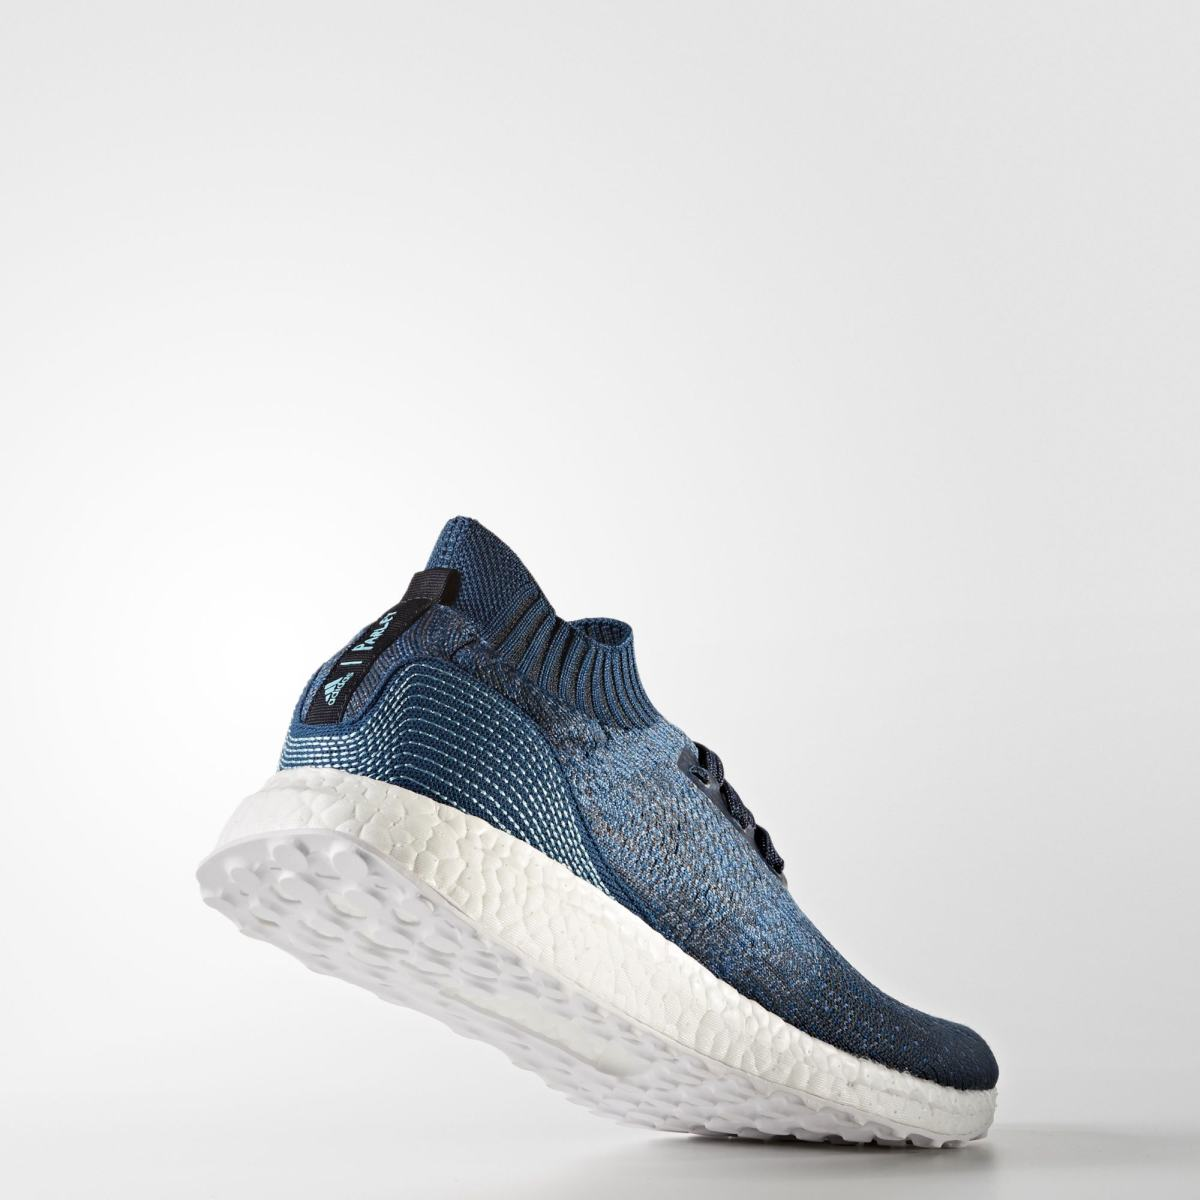 adidas ultra boost x parley. Black Bedroom Furniture Sets. Home Design Ideas